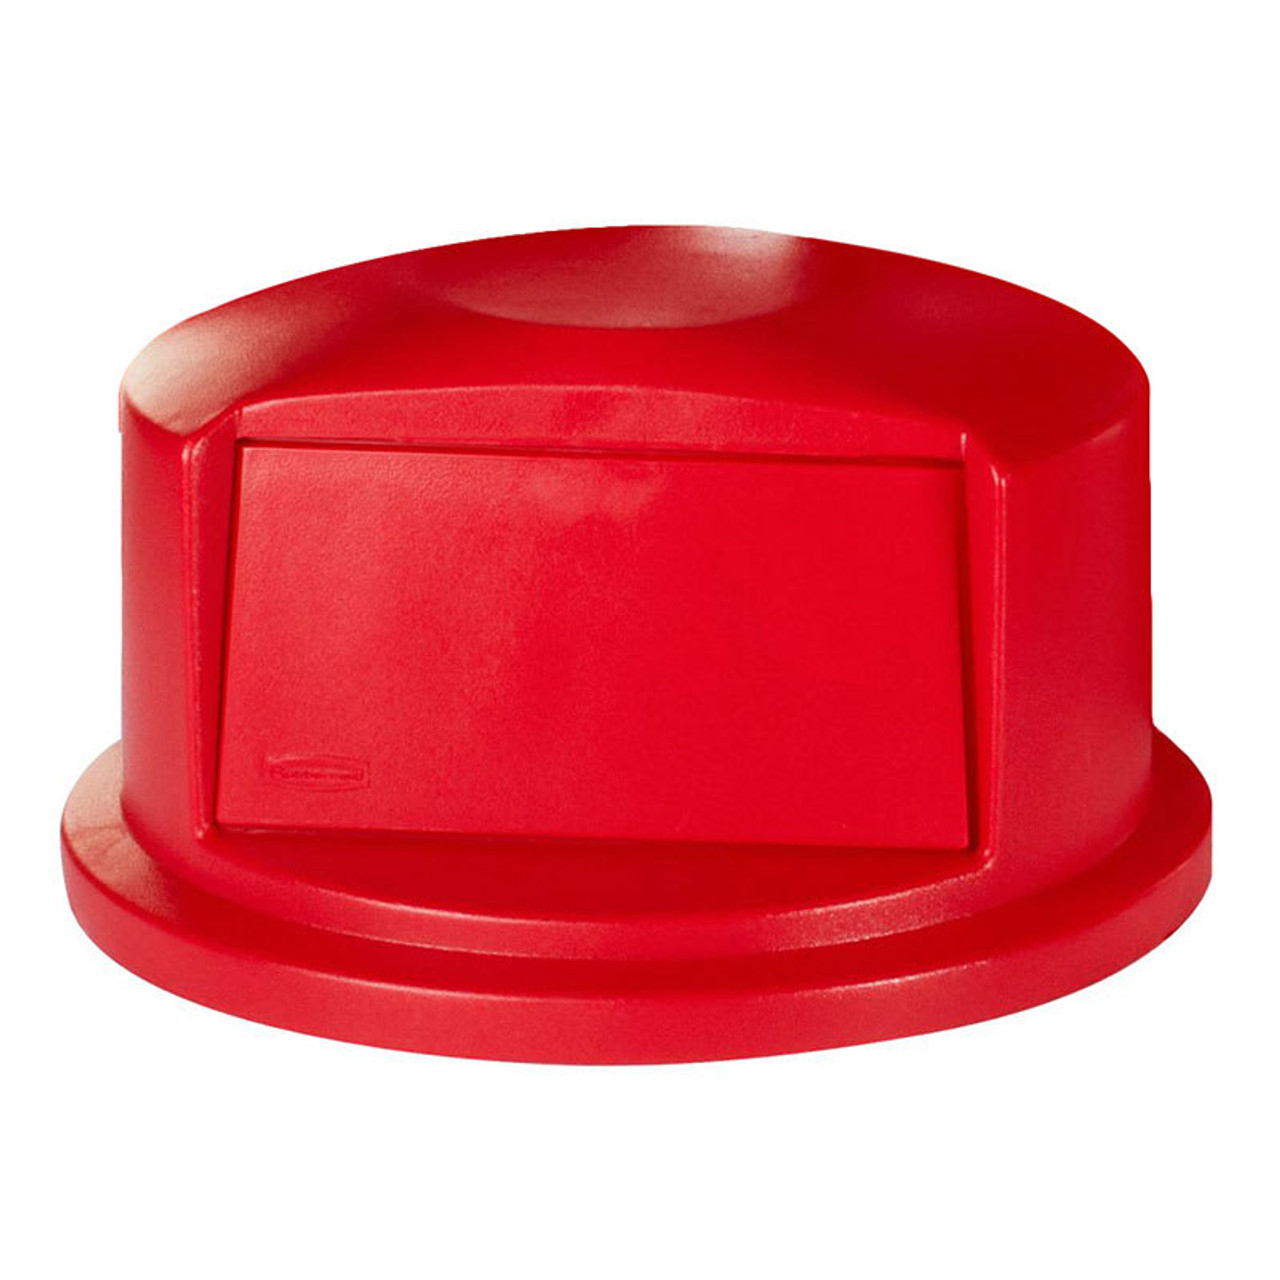 Rubbermaid Dome Top Fits FG264300 - Red - FG264788RED